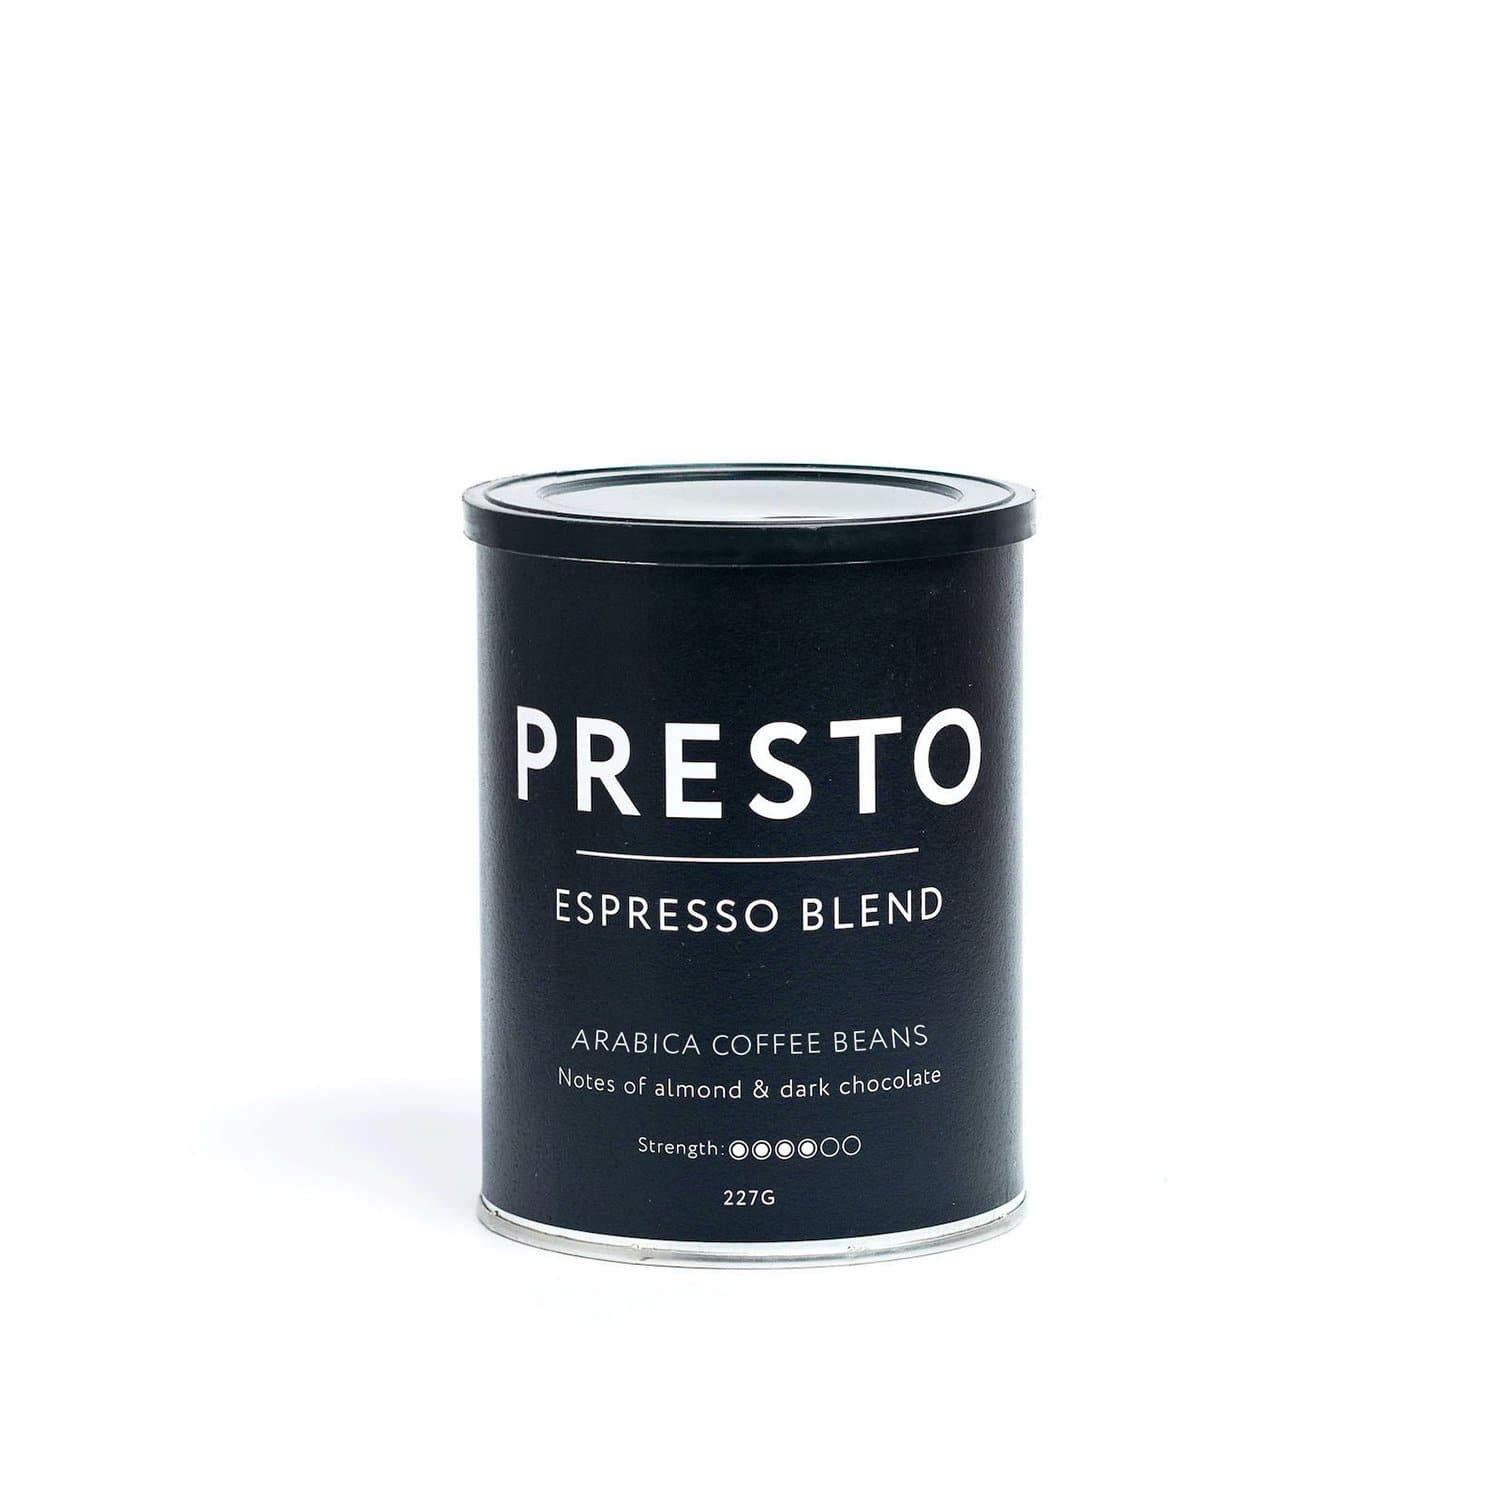 Presto Espresso Coffee Beans - Refillable Coffee Bean Tin - 227g